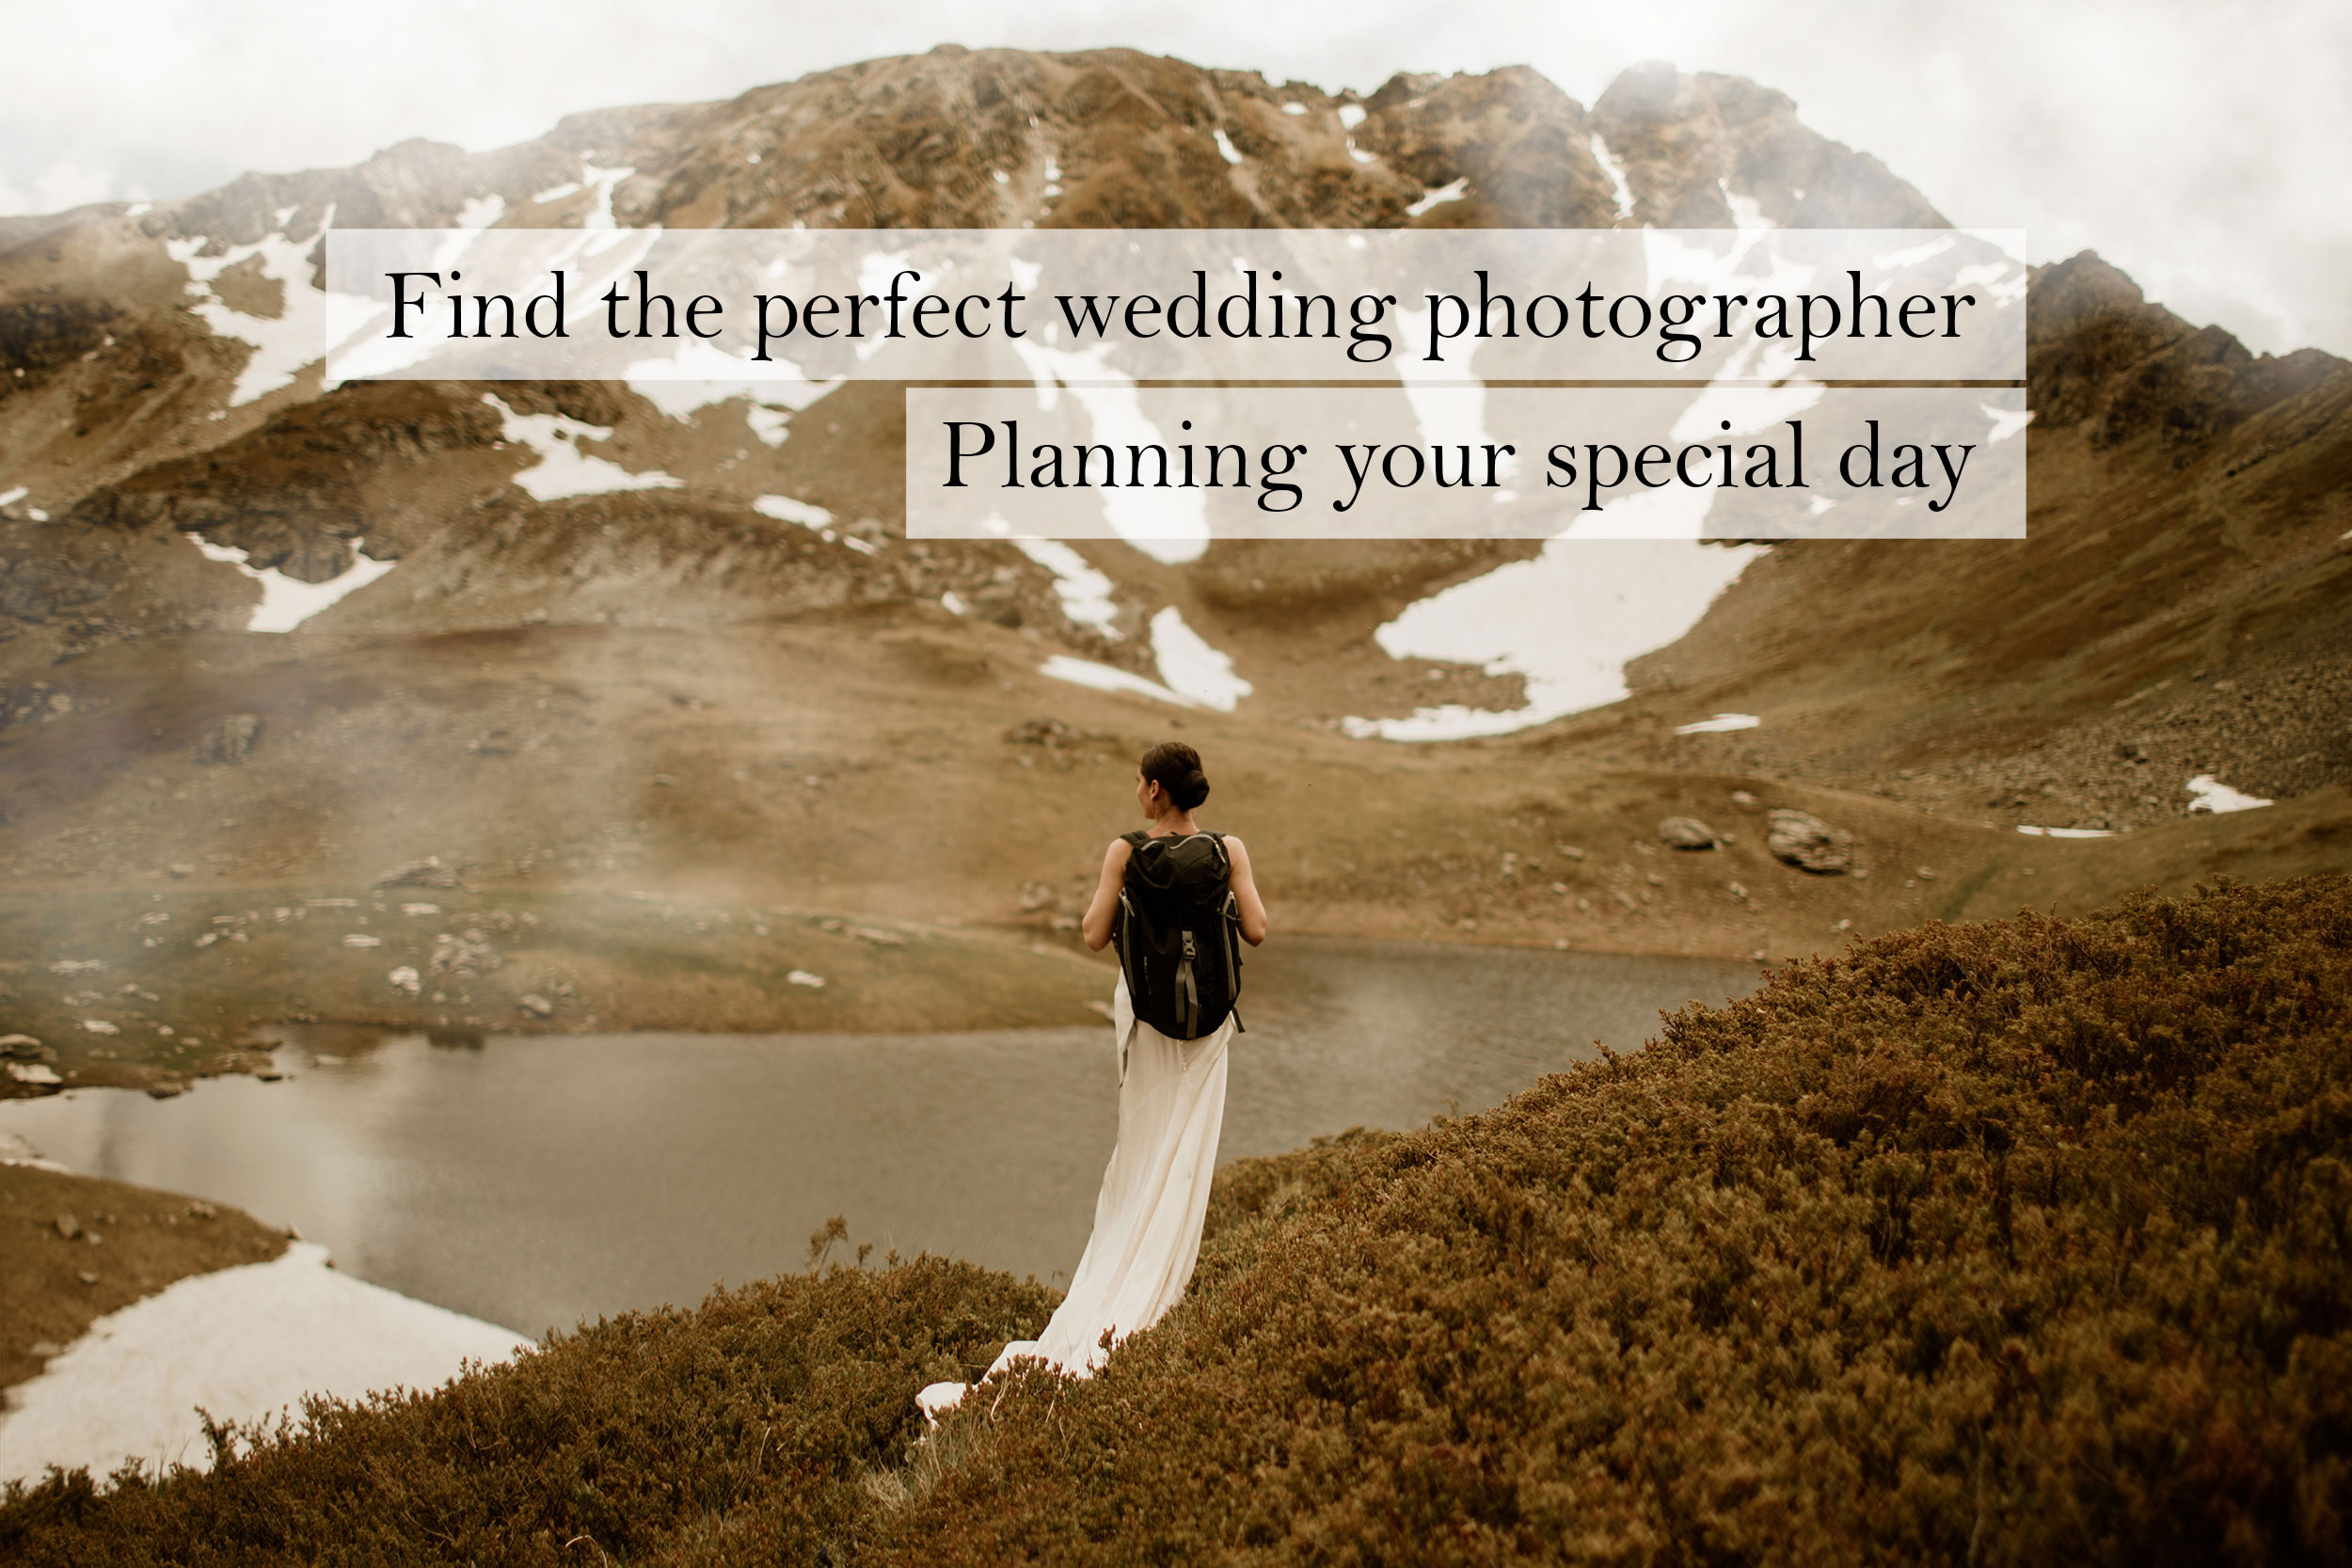 Find the perfect wedding photographer